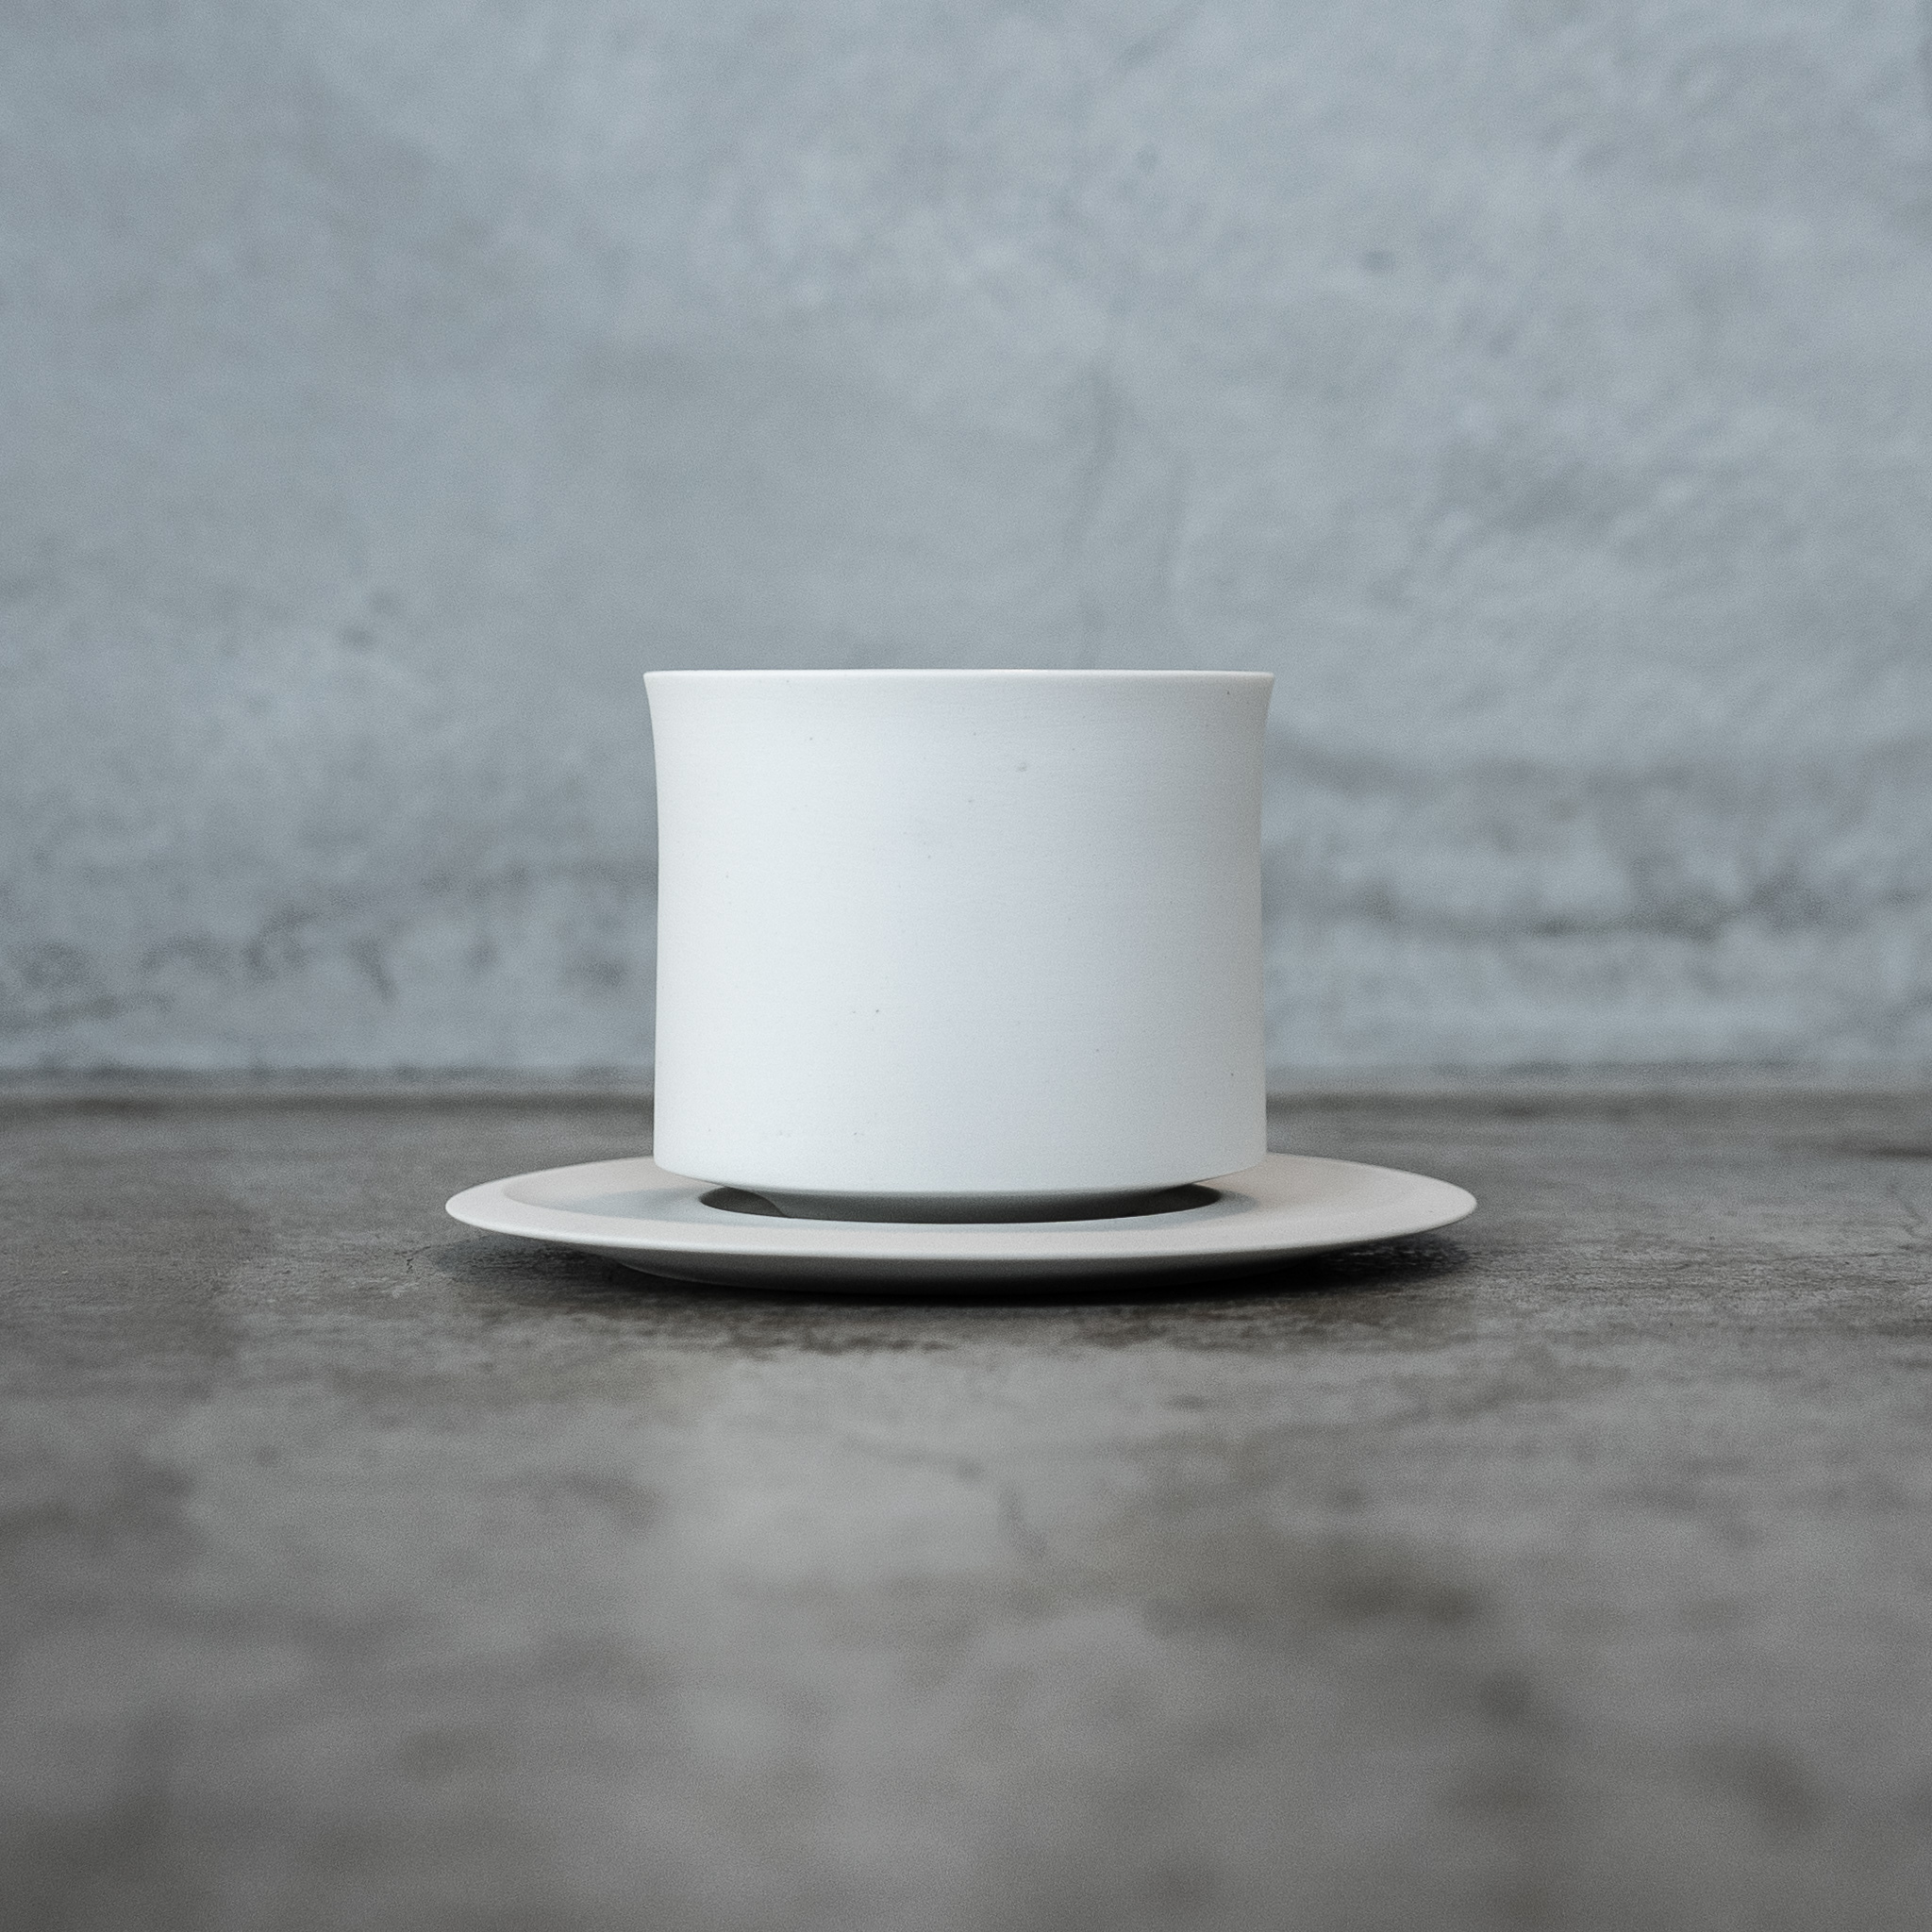 【NEW】cappuccino cup